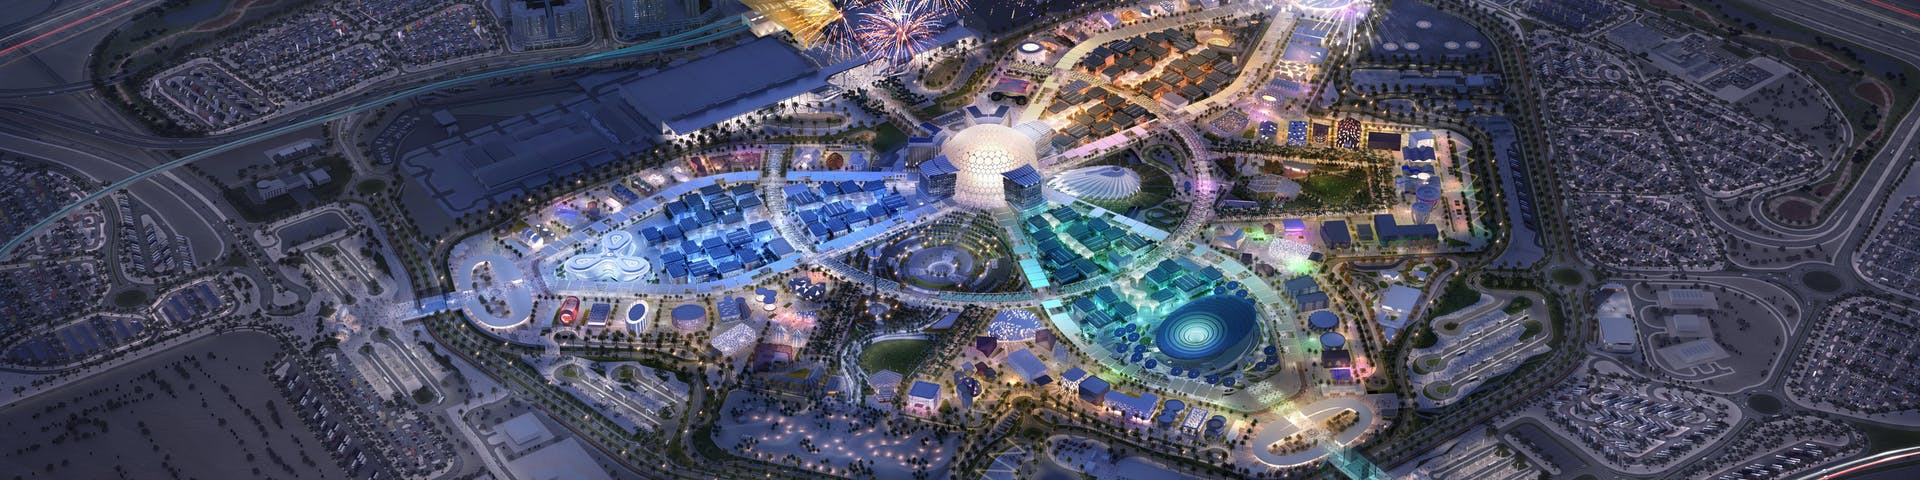 Aerial shot of the Expo 2020 site, the world's greatest show